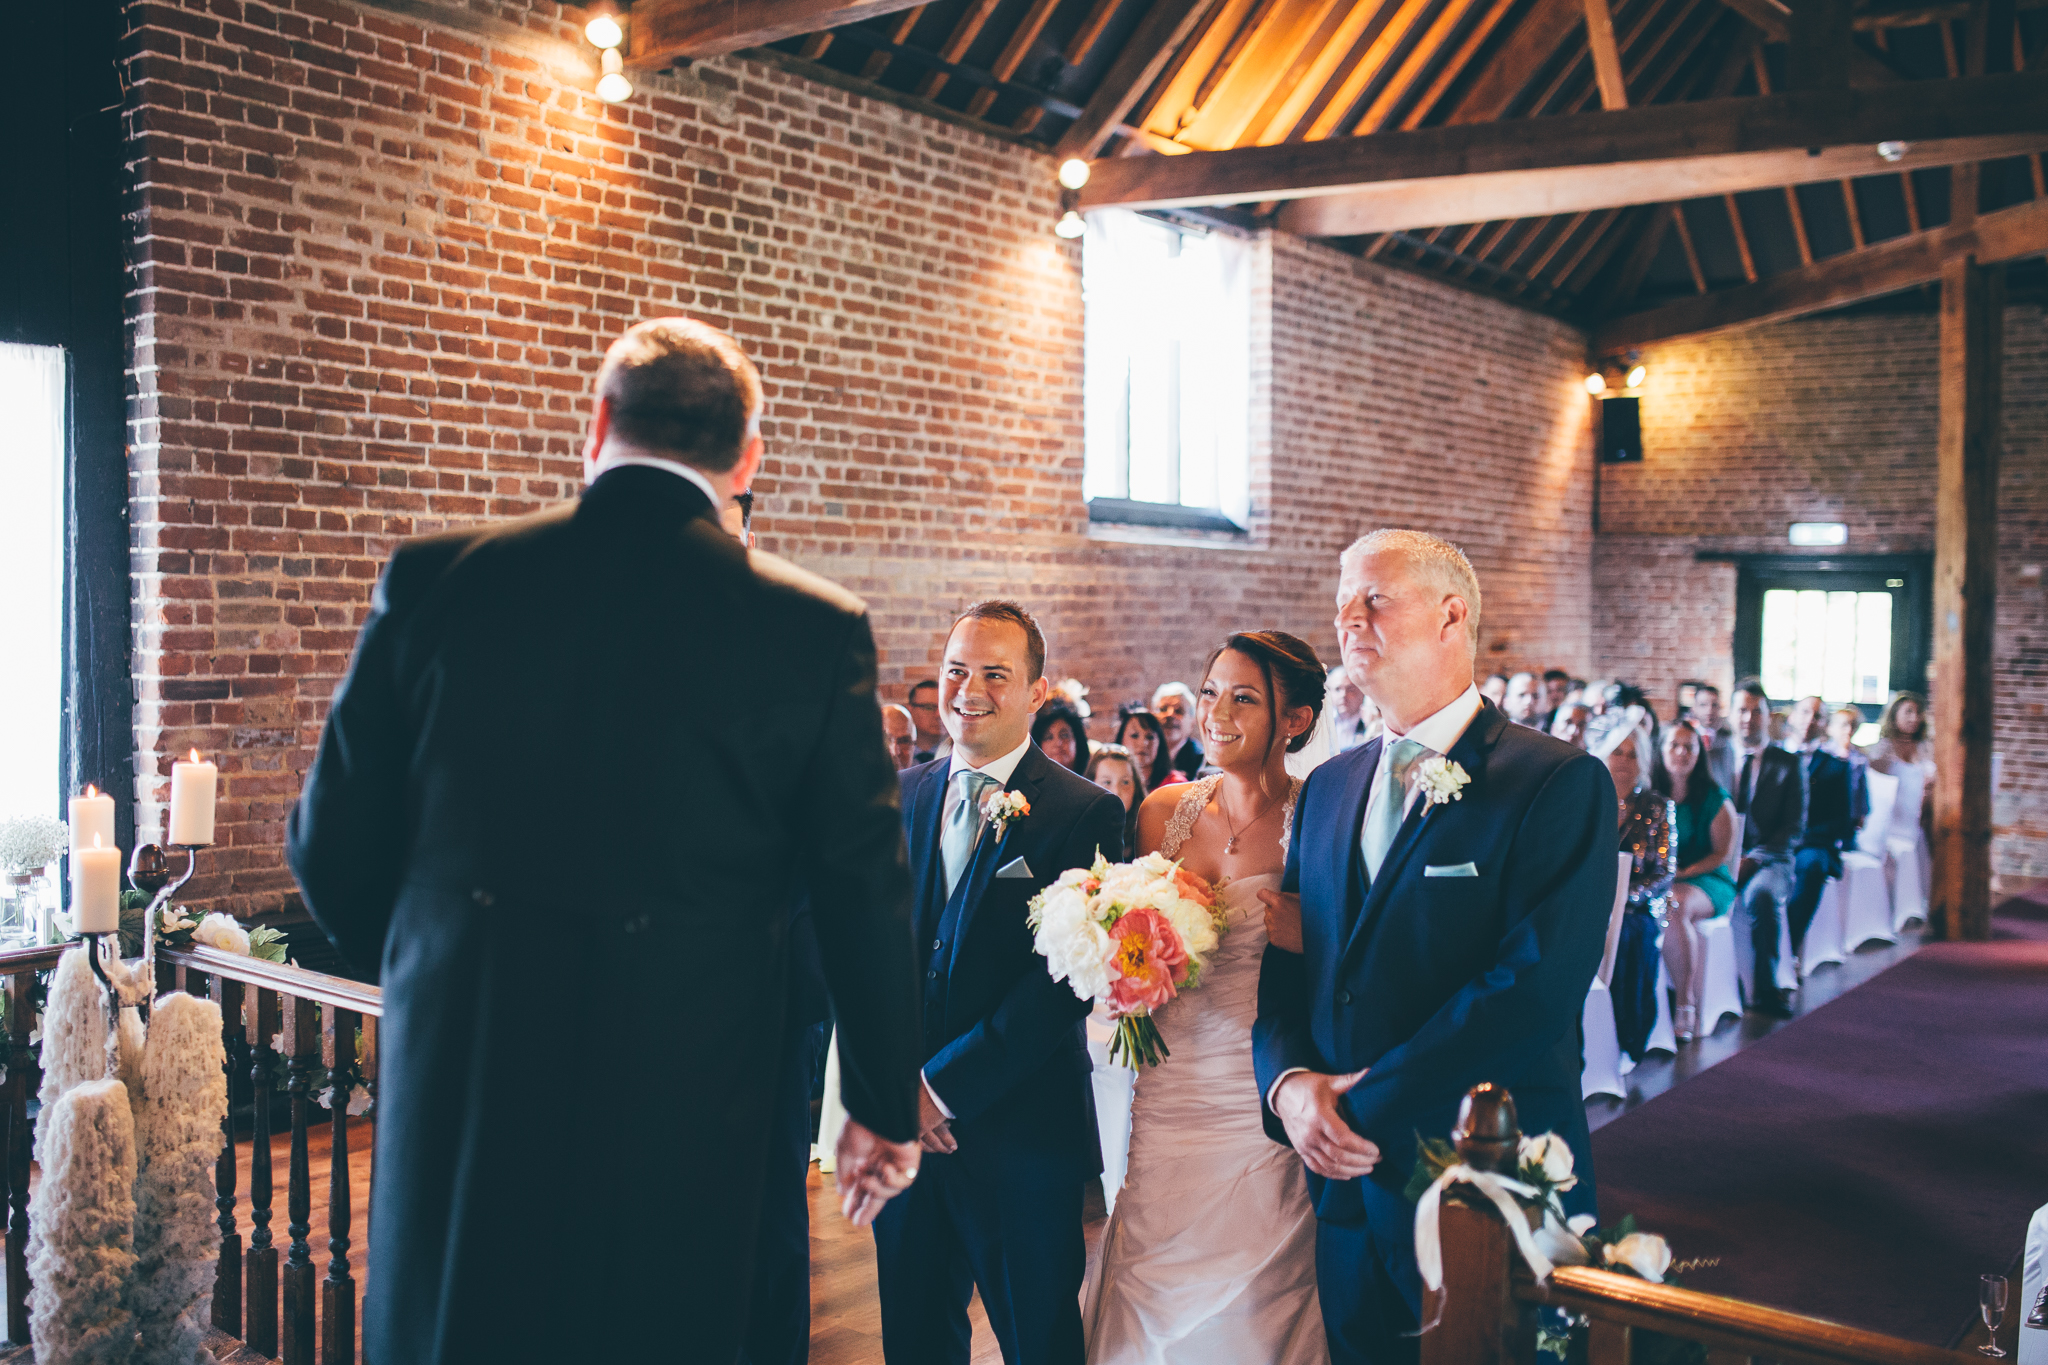 Joanna Nicole Photography Creative artistic wedding photography kent cooling castle barns vintage documentary (29 of 106).jpg